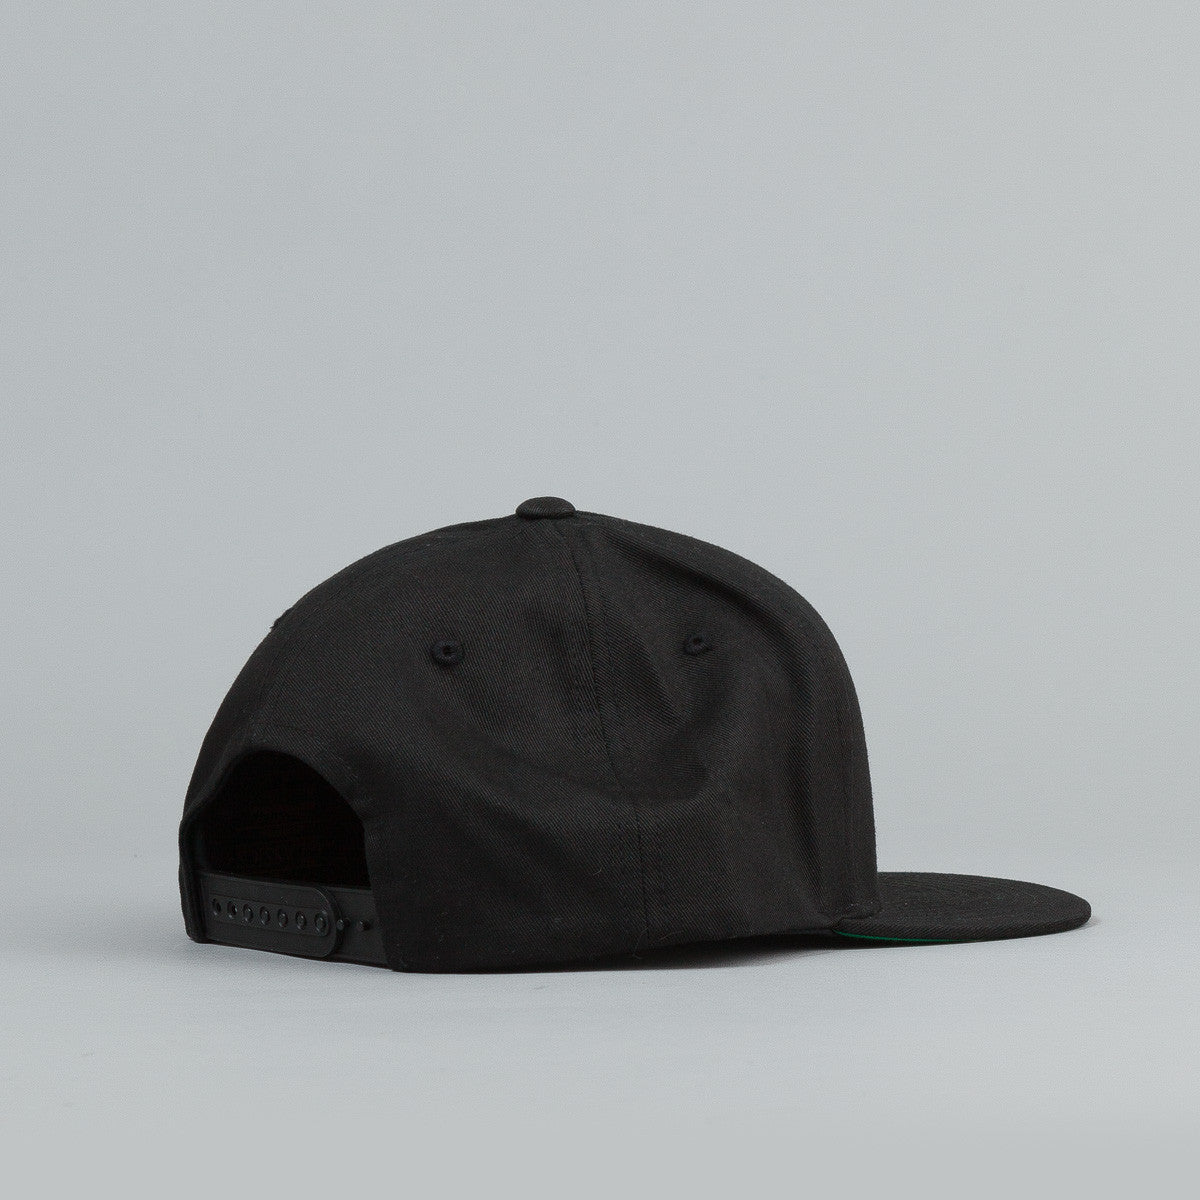 Welcome Talisman Snapback Cap - Black